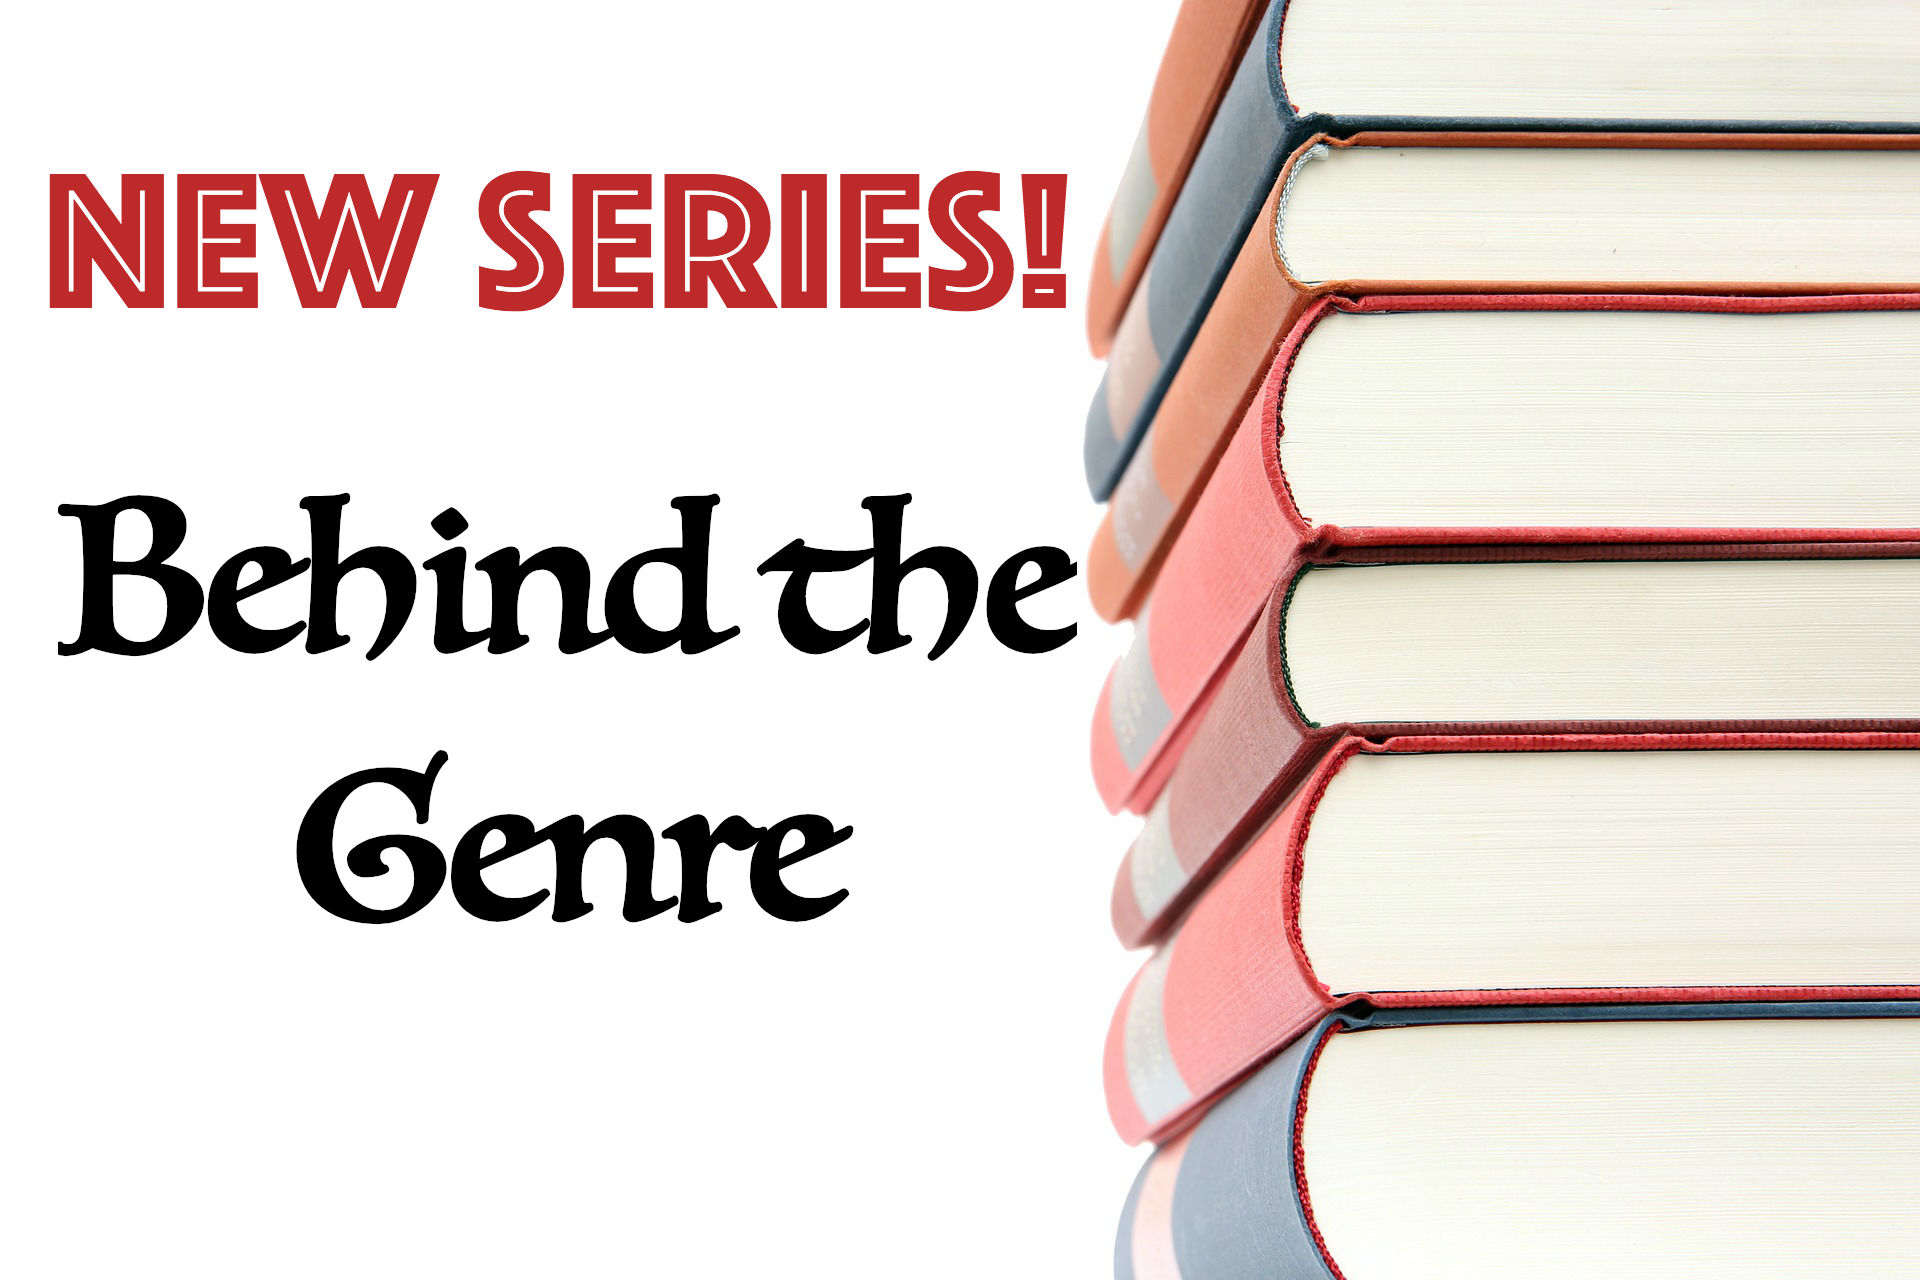 Behind the Genre: An Introduction